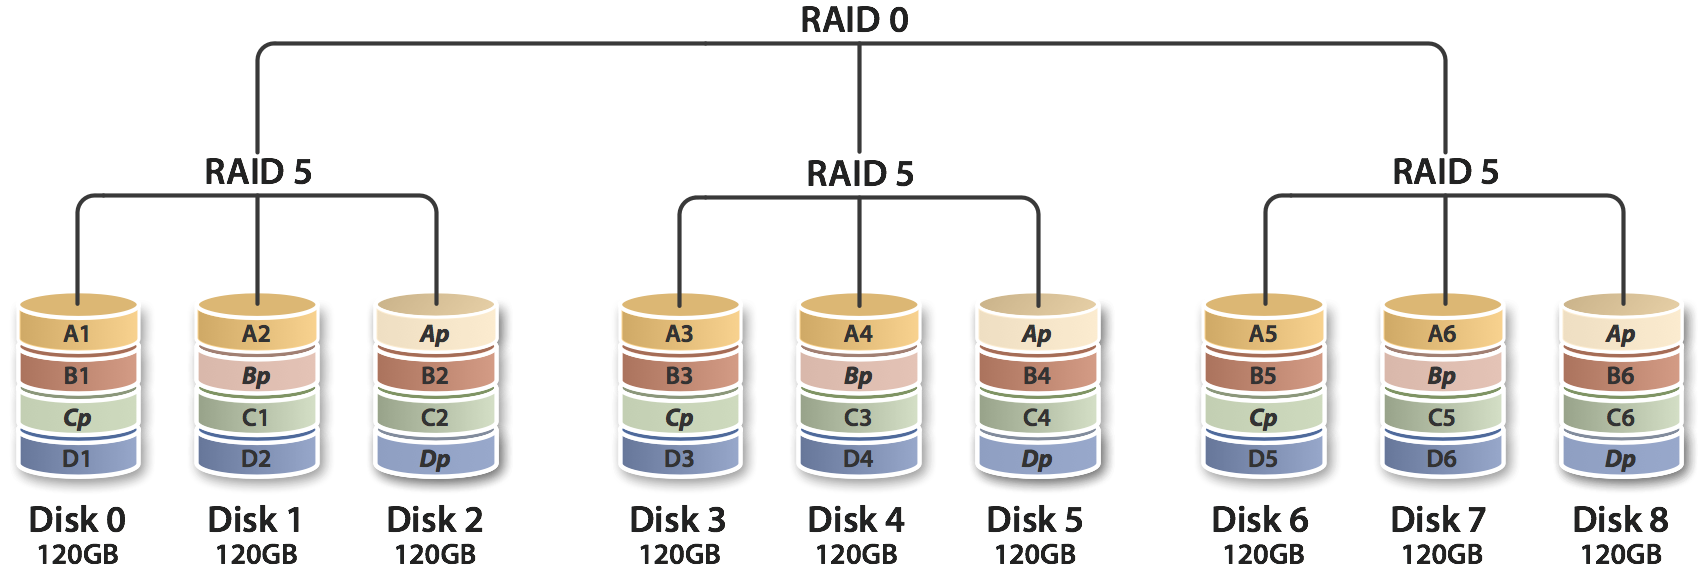 software-hardware-raid